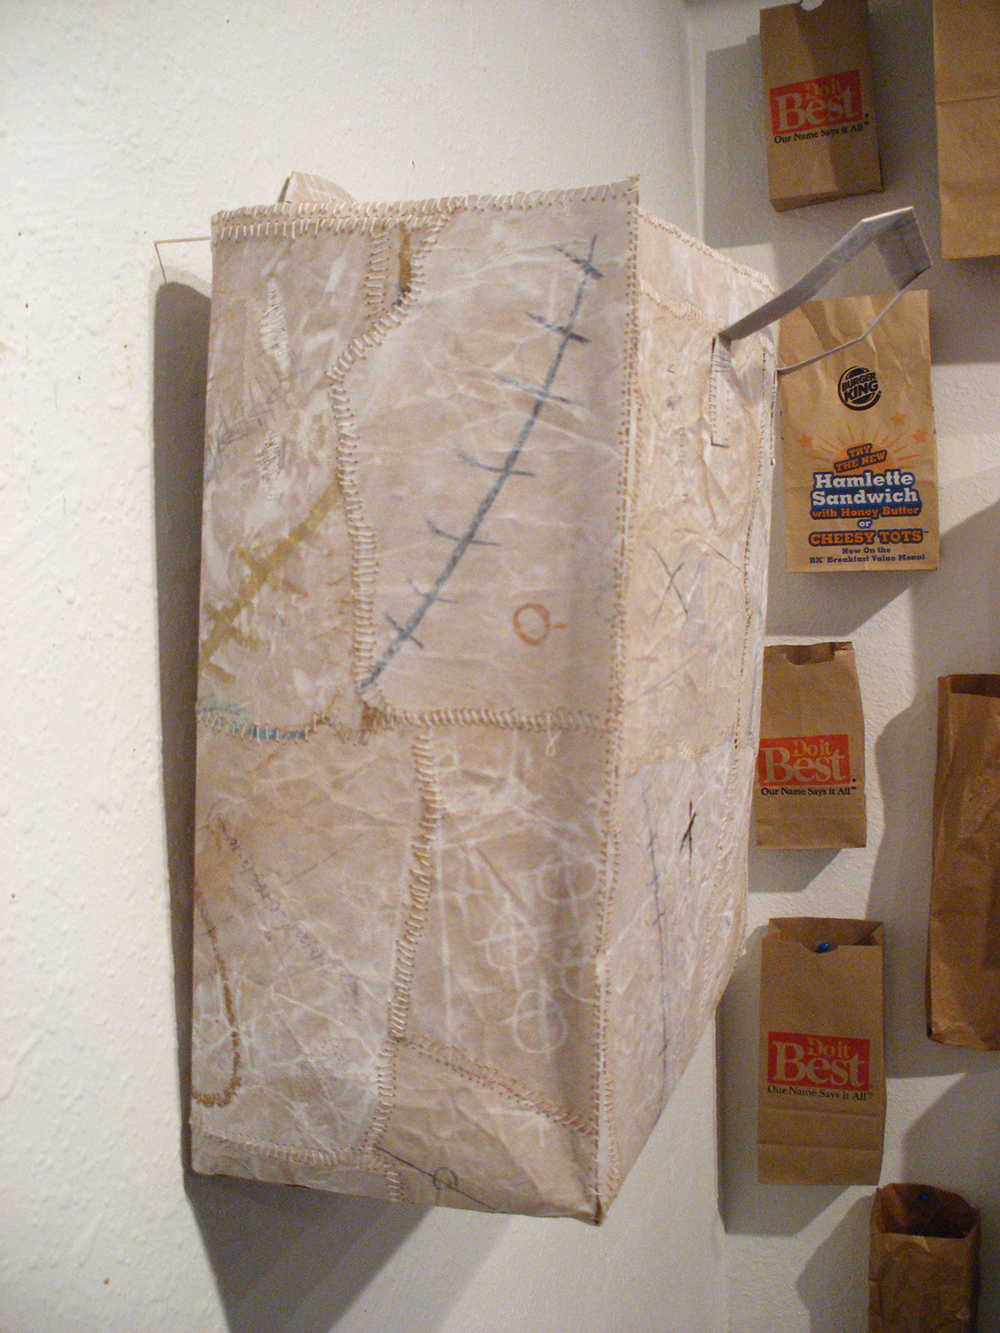 paper bag side shot on wall.jpg